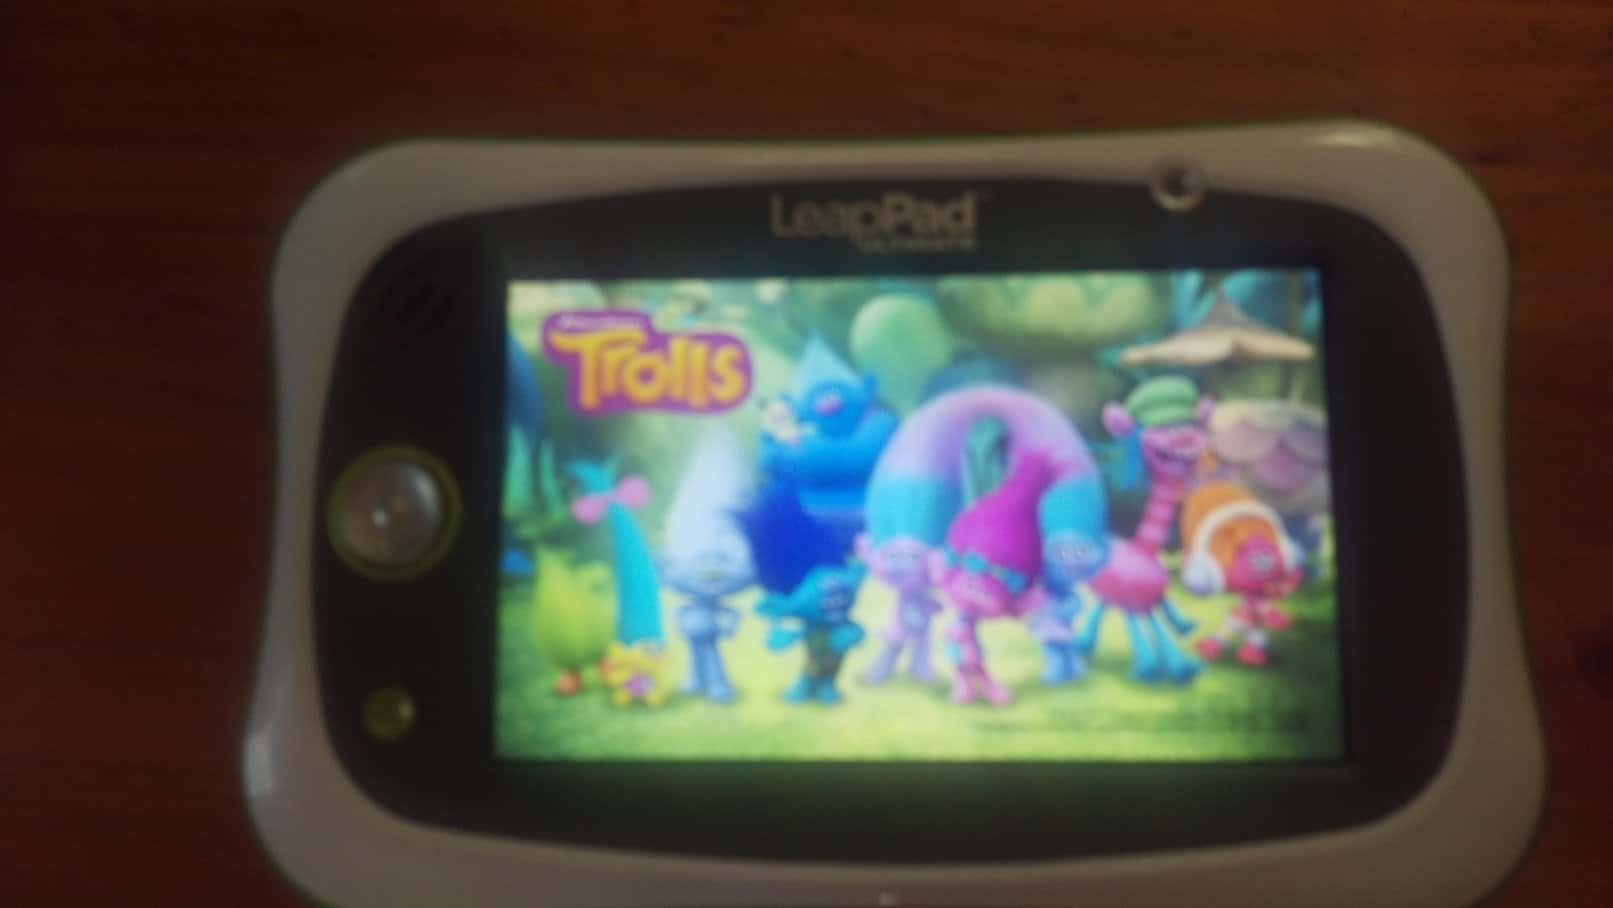 Trolls-educational-leappad-game